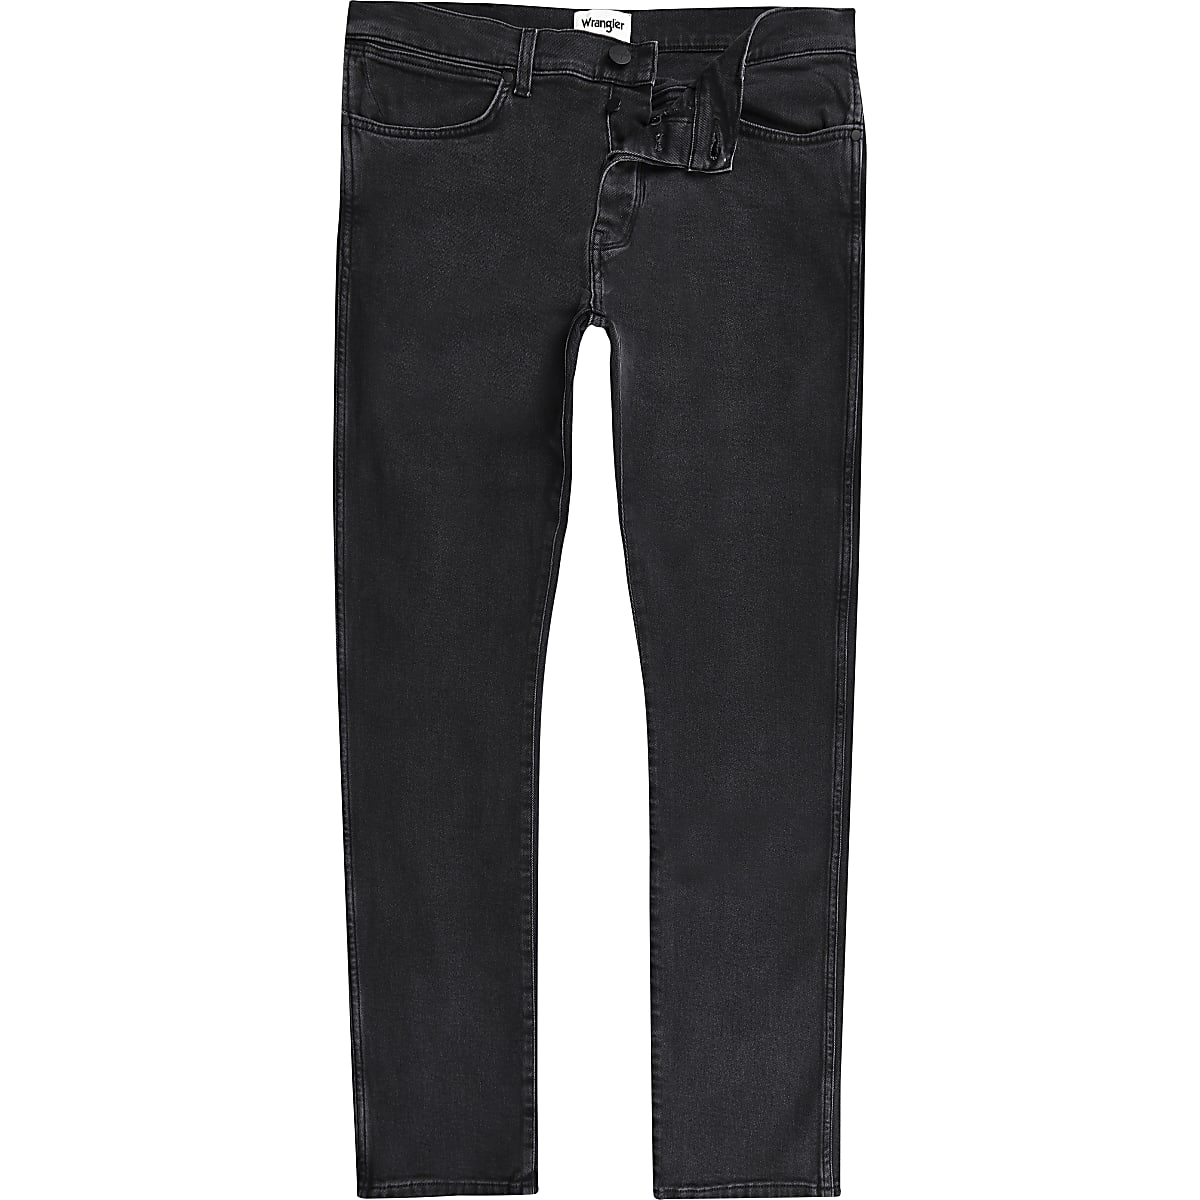 d46db73b1bb Wrangler black Spencer slim fit jeans - Skinny Jeans - Jeans - men